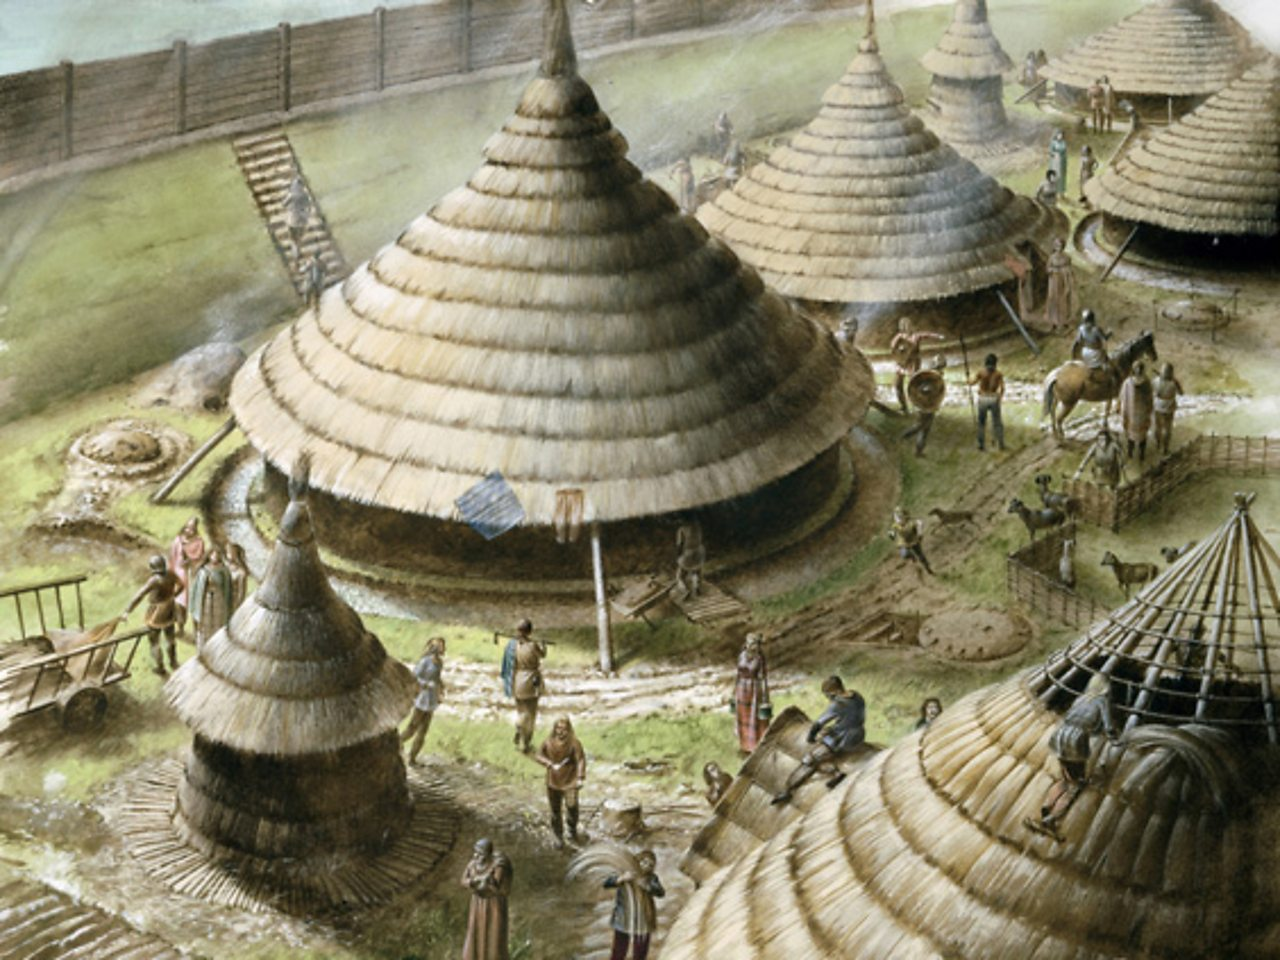 An image of the round house that the Britons lived in during the Iron Age